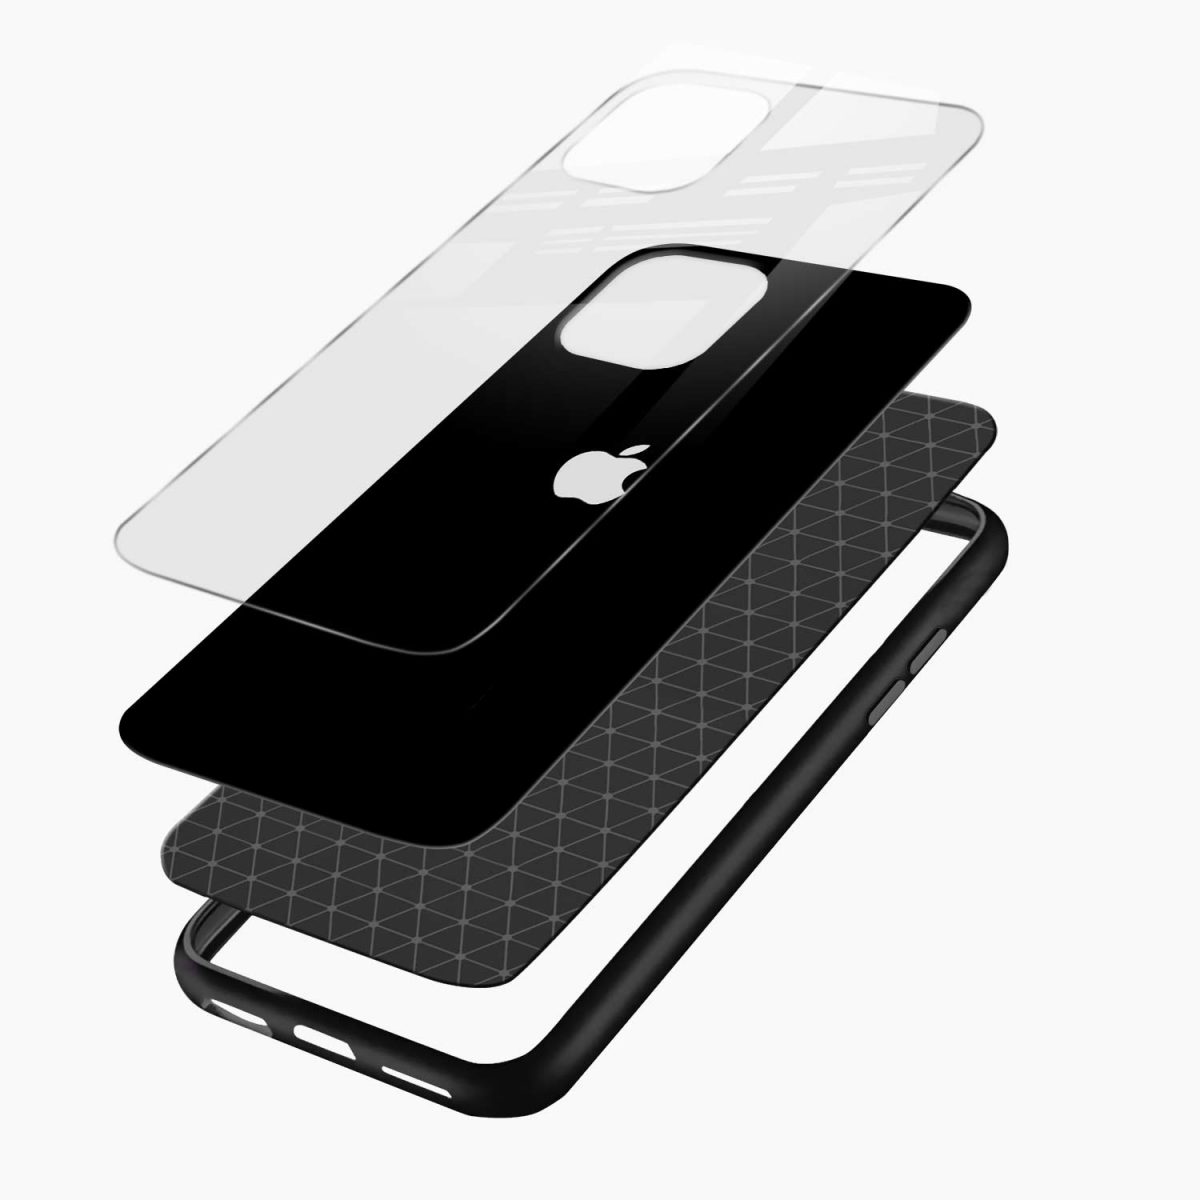 simply elegant iphone pro back cover layers view